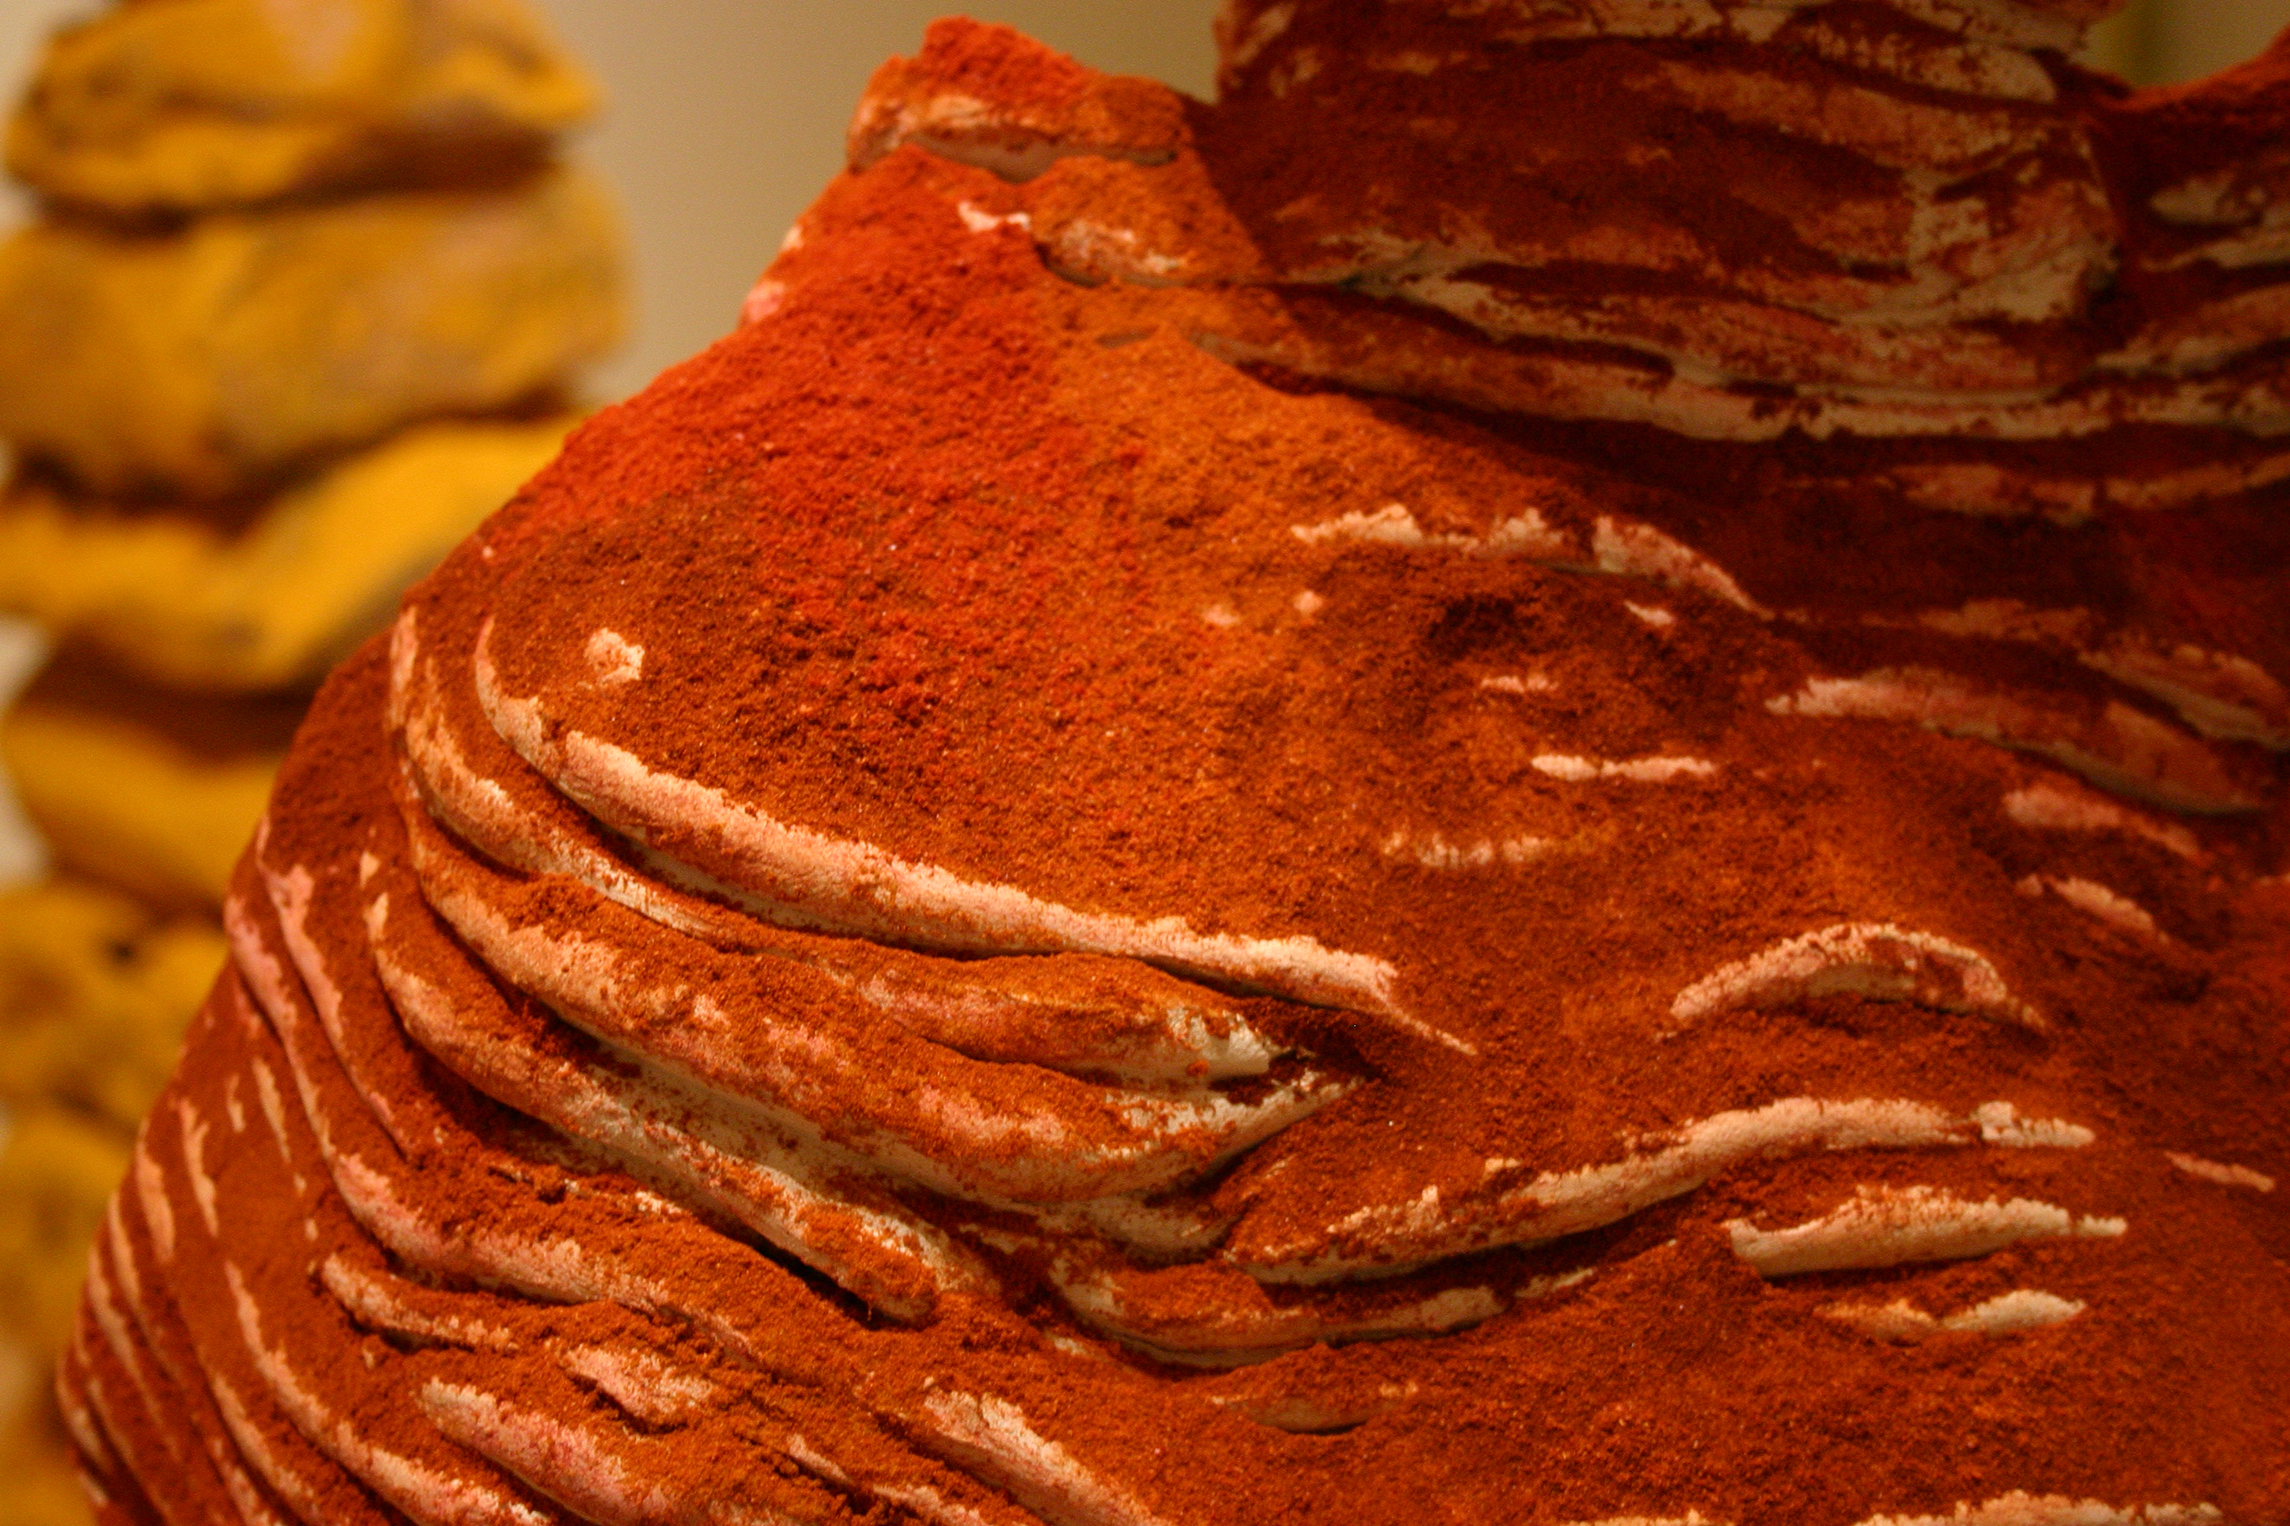 Detail of the red spice on the ceramic sculpture